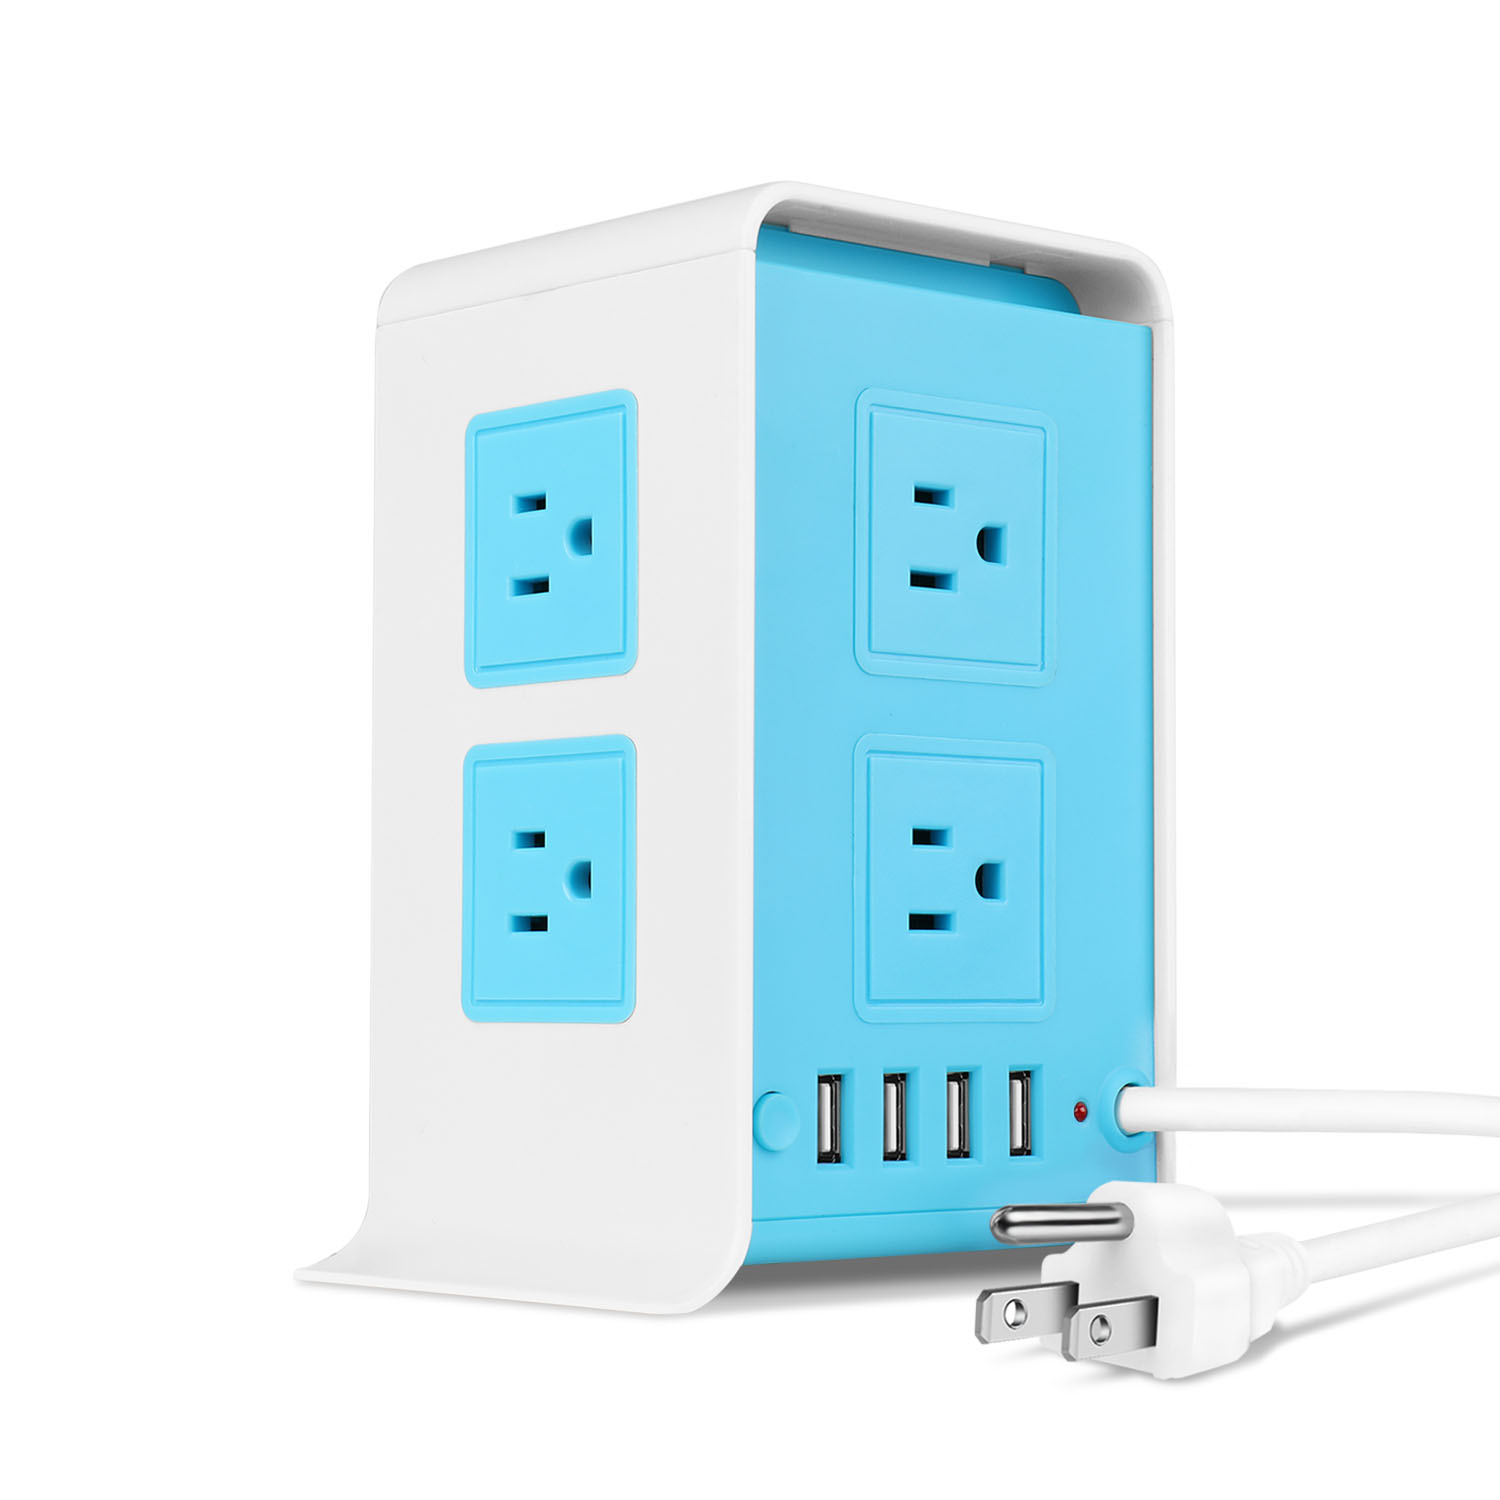 Power Strip Tower Surge Protector with 4 USB Ports 8 AC Outlet, Charging Station Power Supply Multi Socket Plug with 6ft Extension Cord For PC Laptop Smartphone & Appliance (Blue)